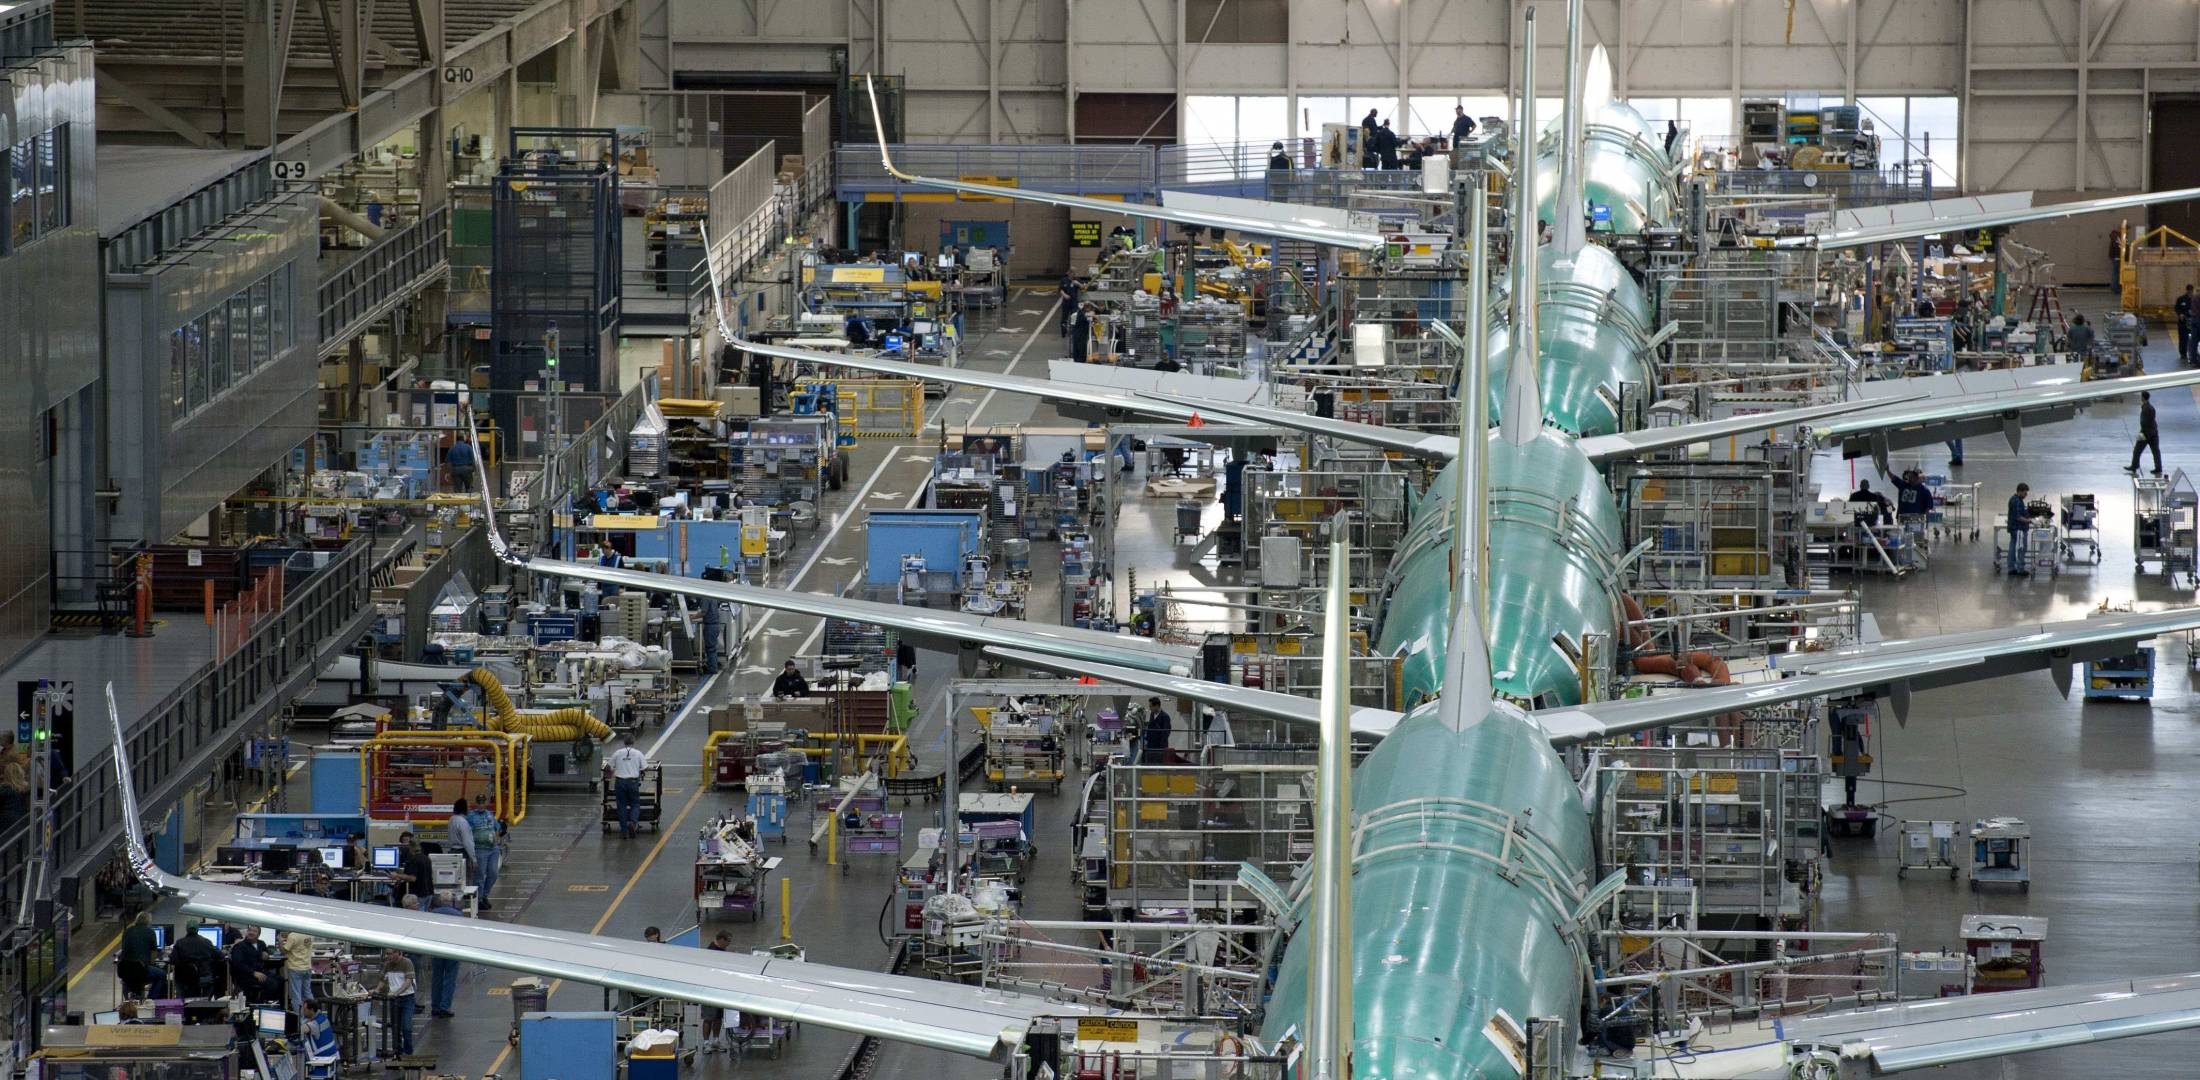 Boeing aircraft on the production line.